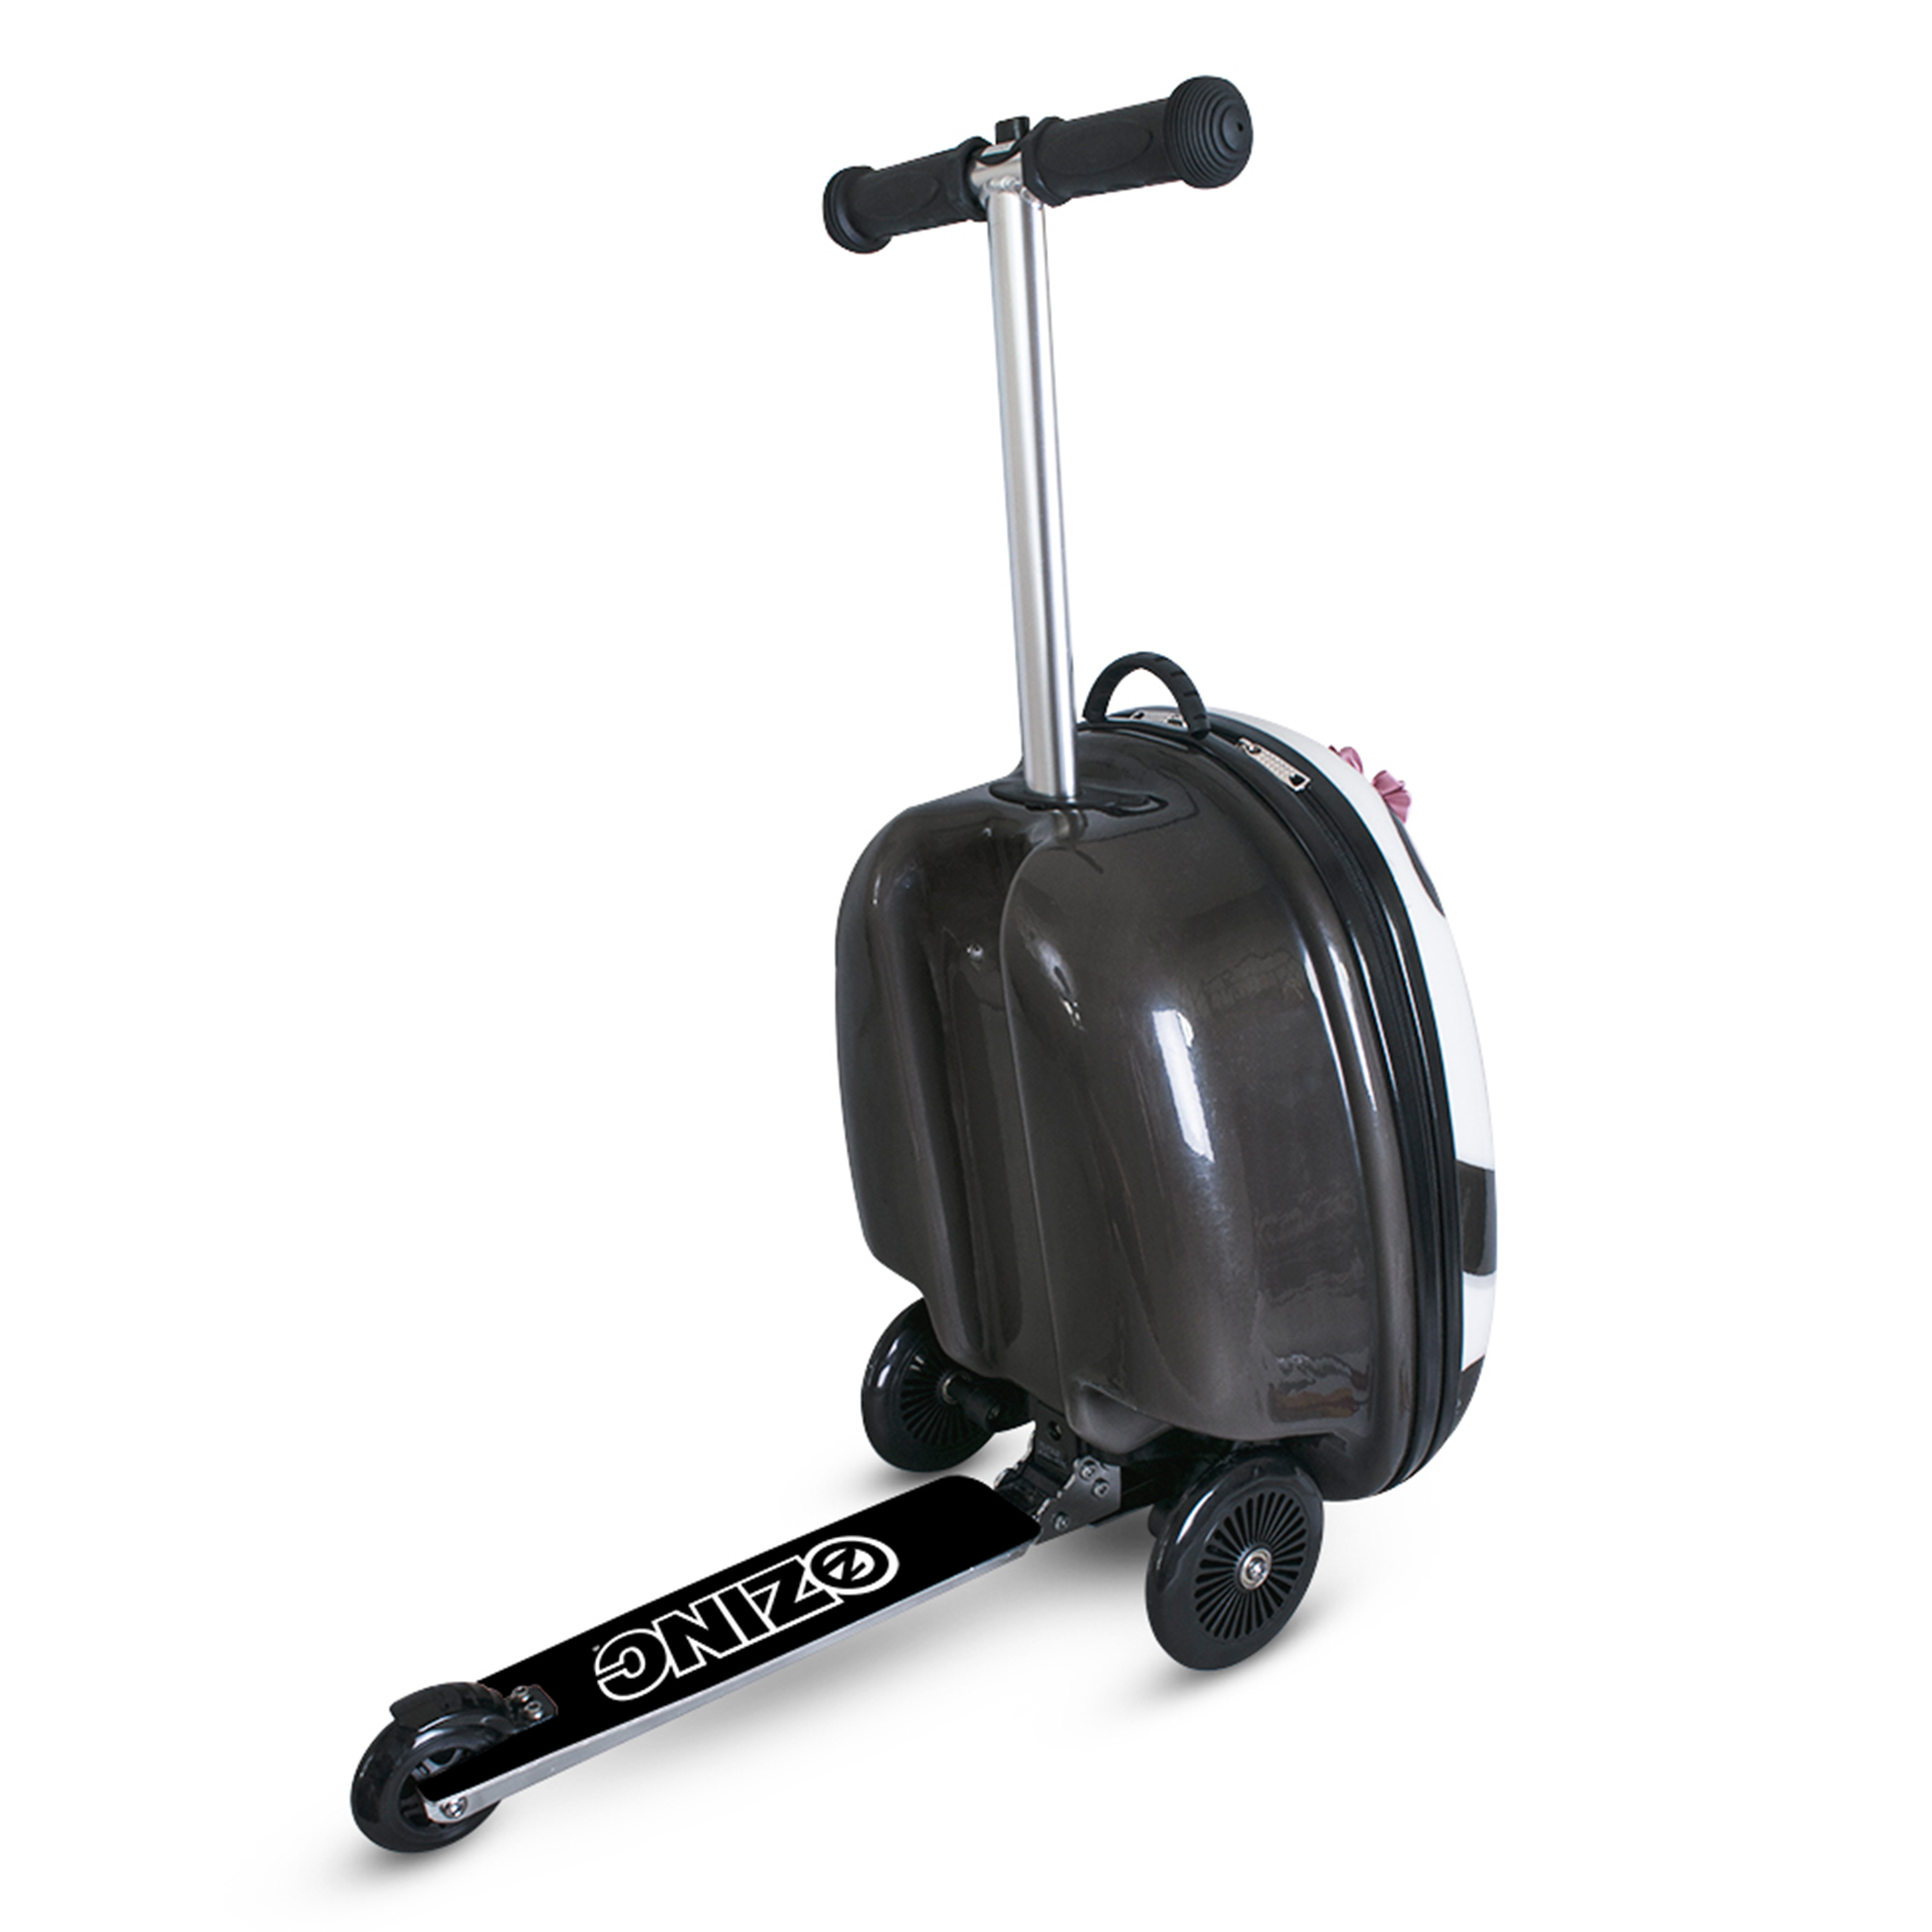 Zinc Flyte Sid The Cyclops Midi 25L Case Scooter